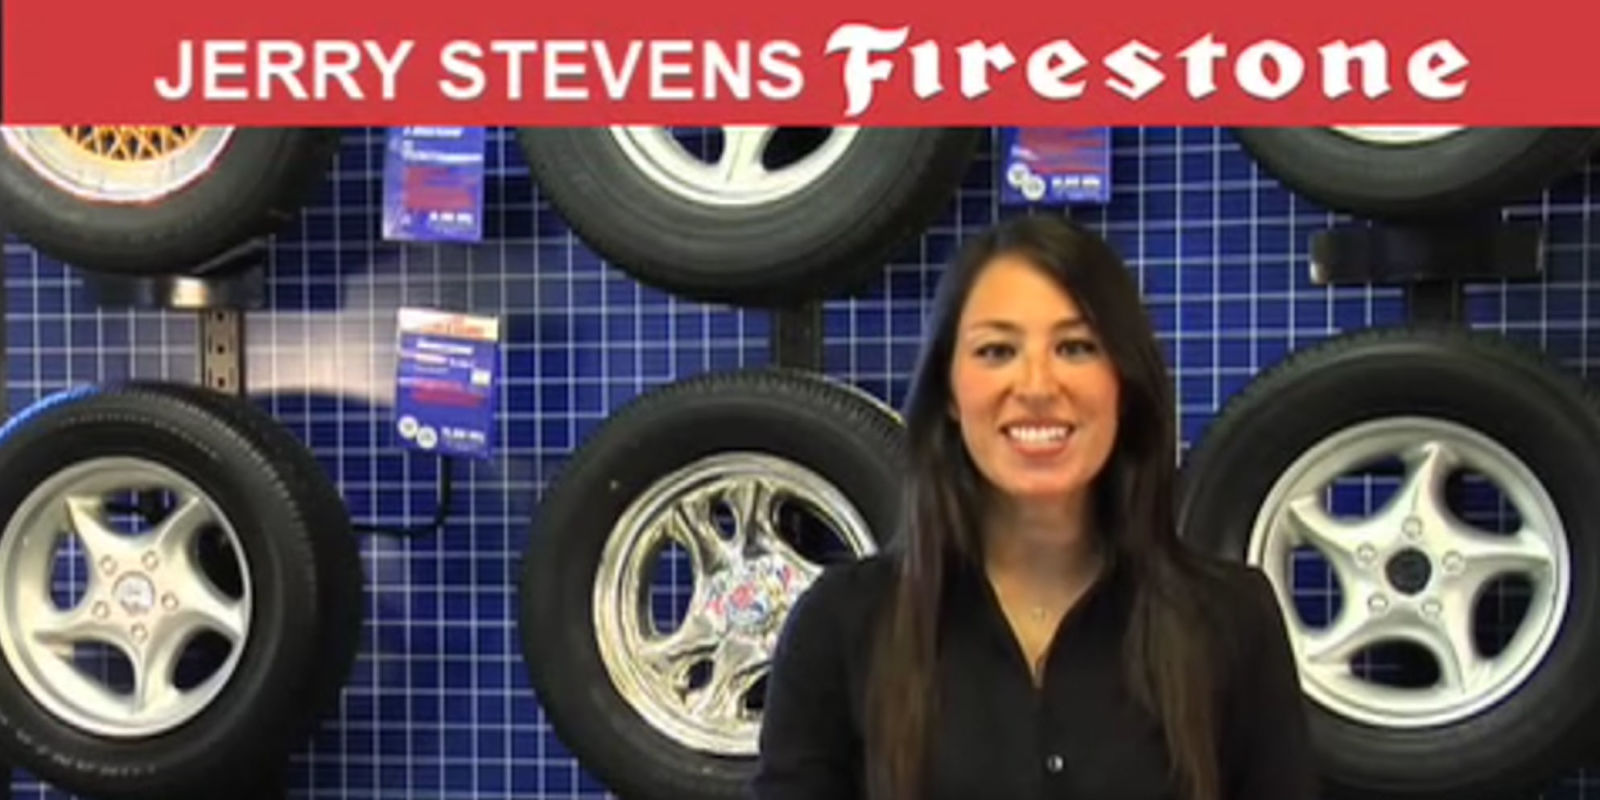 Watch joanna gaines in her firestone tire shop commercial for Joanna gaines firestone commercial